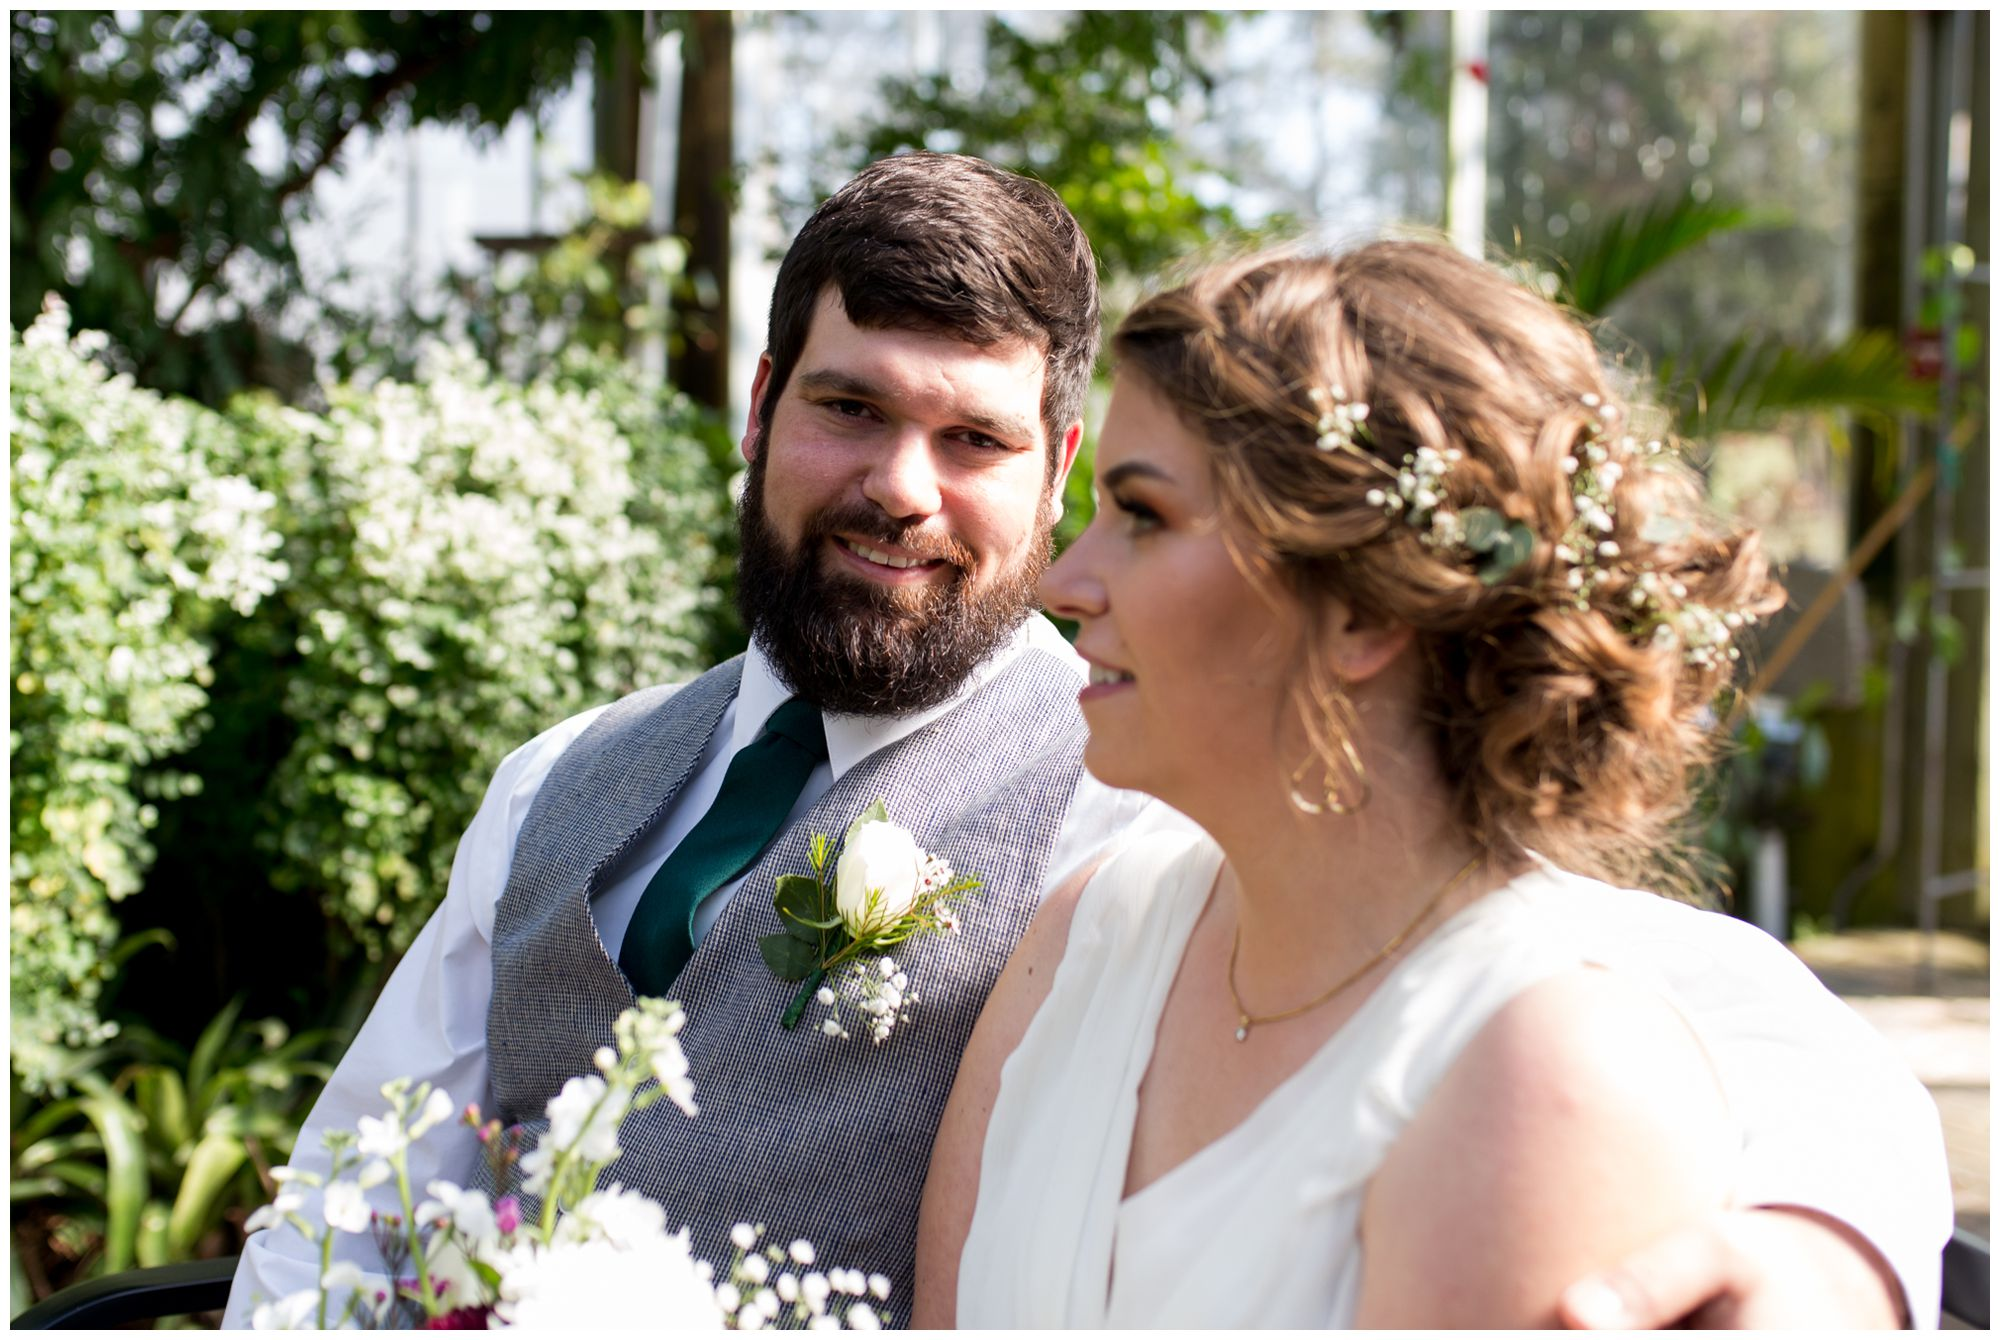 groom with bride before wedding at Garfield Park Conservatory in Indianapolis